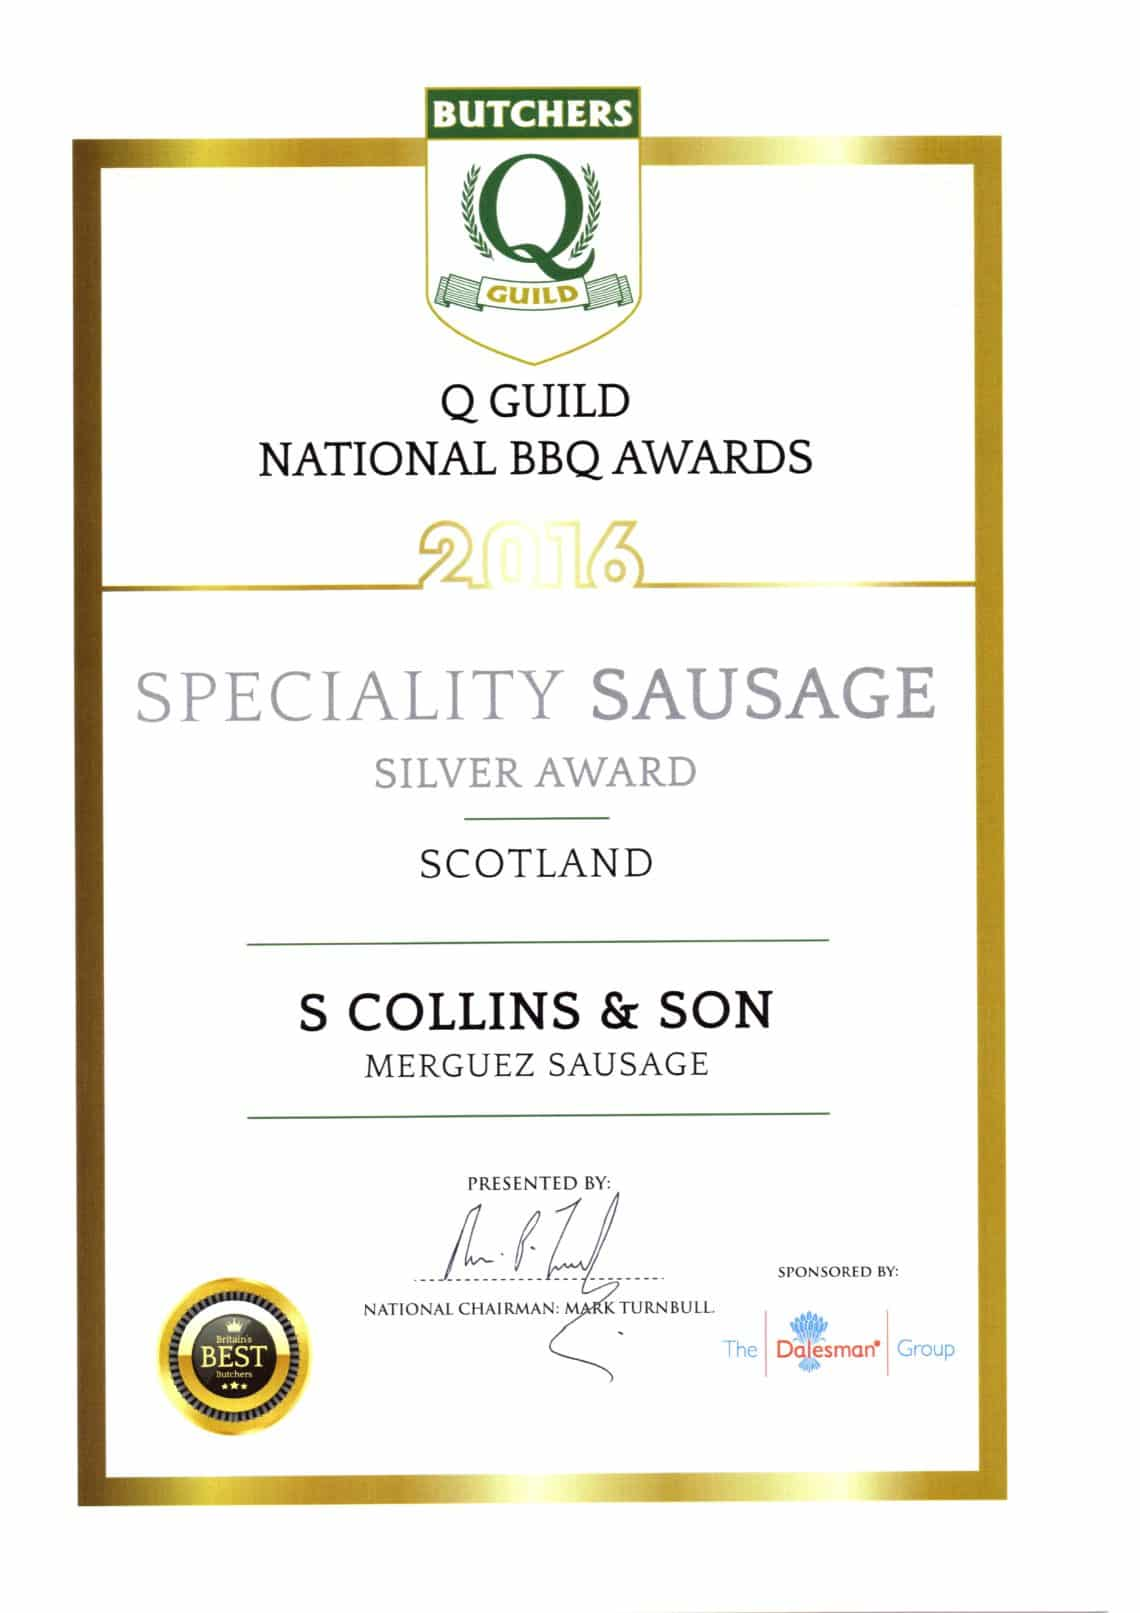 National BBQ Awards 2016: BBQ Merguez Sausage